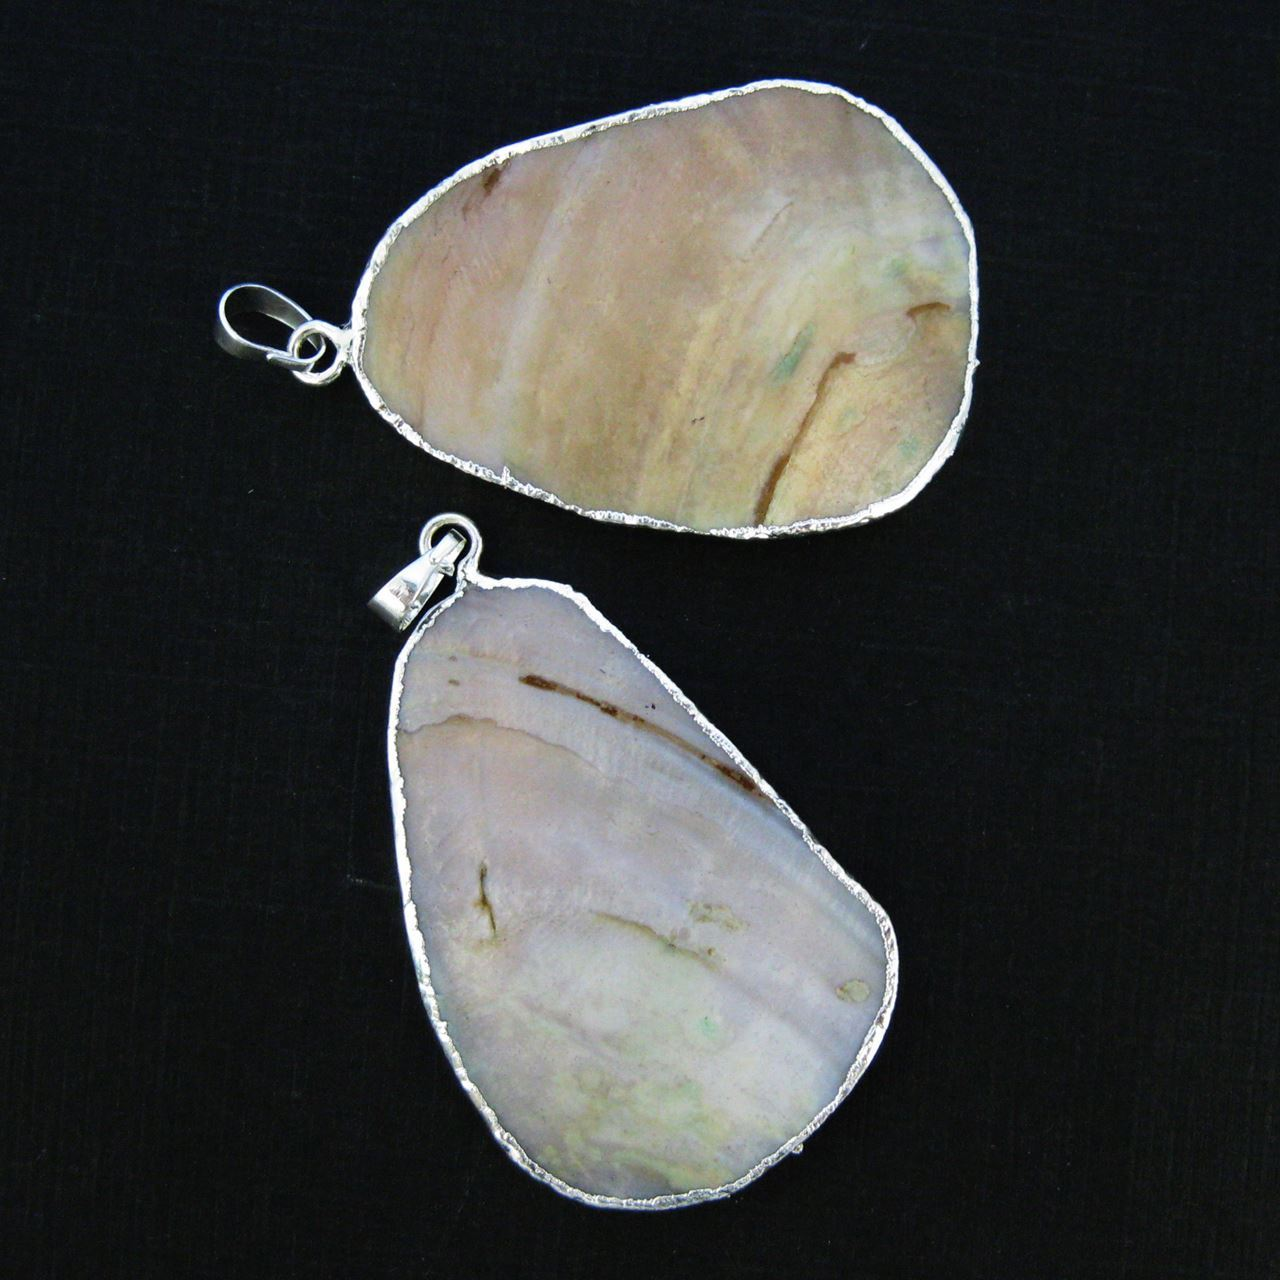 Natural Mother of Pearl Pendant, Genuine Mother of Pearl Silver plated Brass Edging Unique- One of a Kind Pendant-Organic Oval